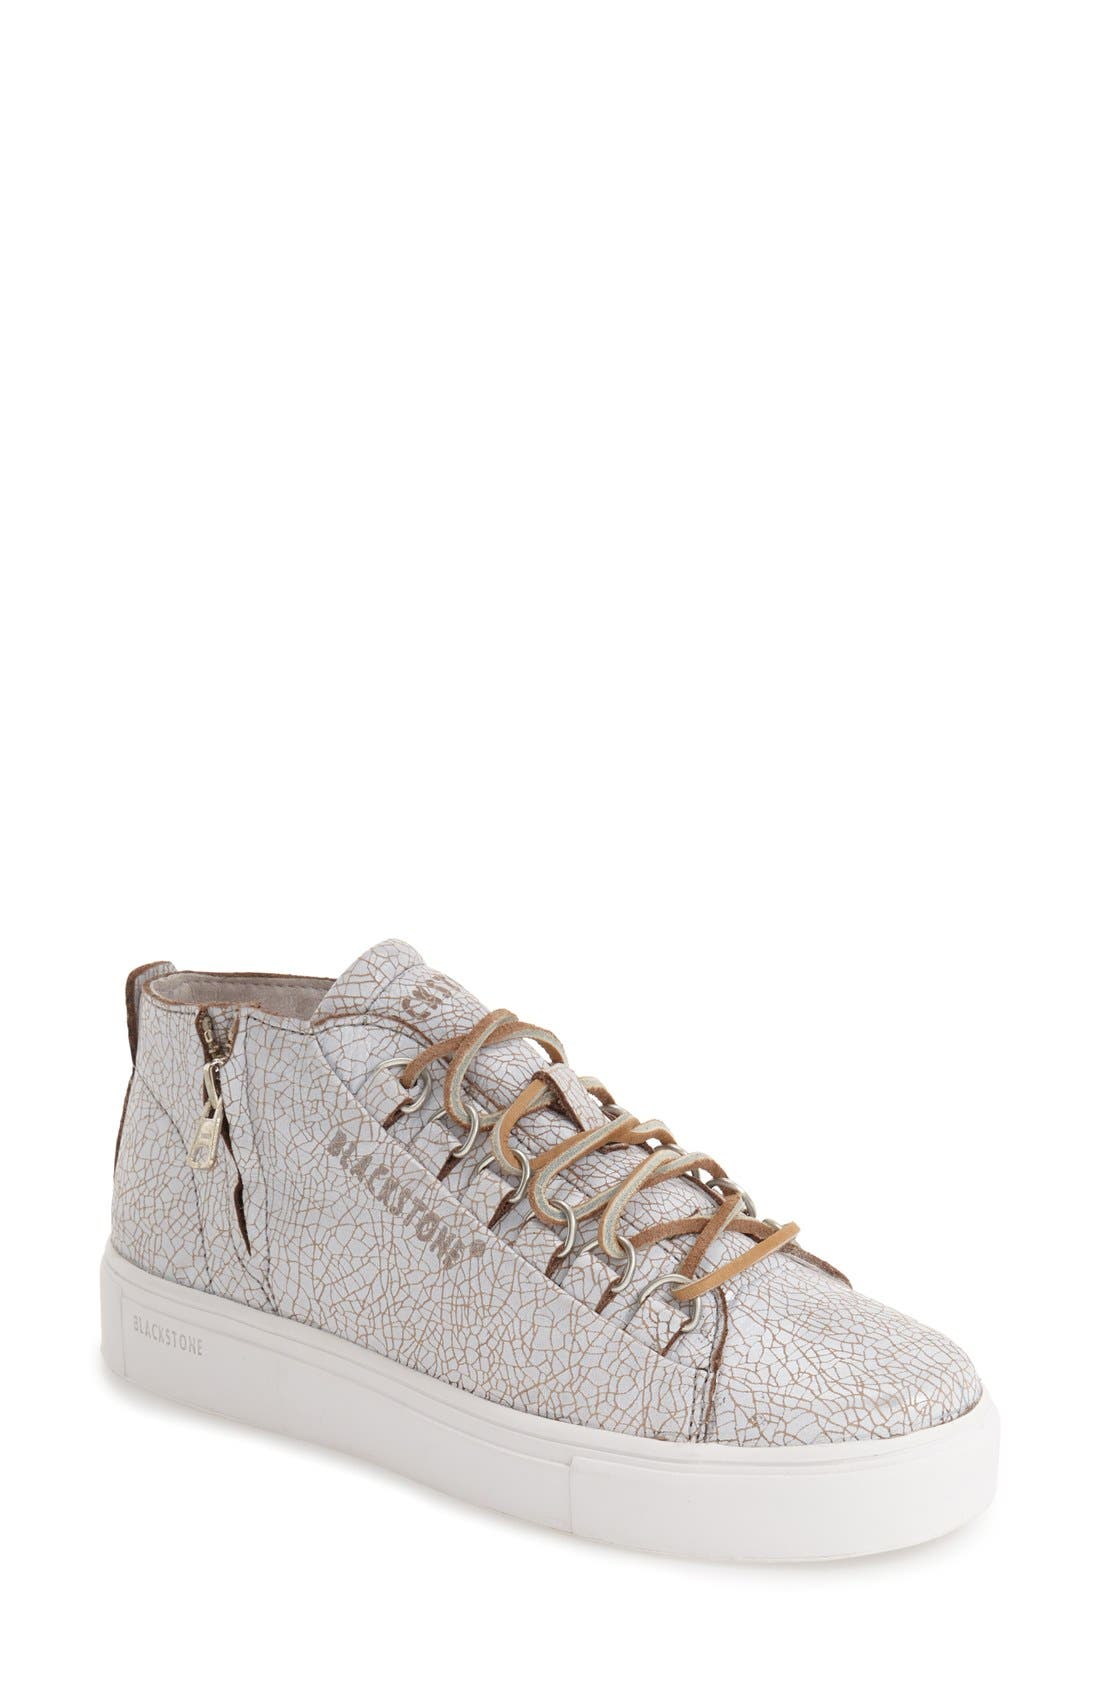 'LL60' Midi Sneaker,                         Main,                         color, Hazel/ White Leather